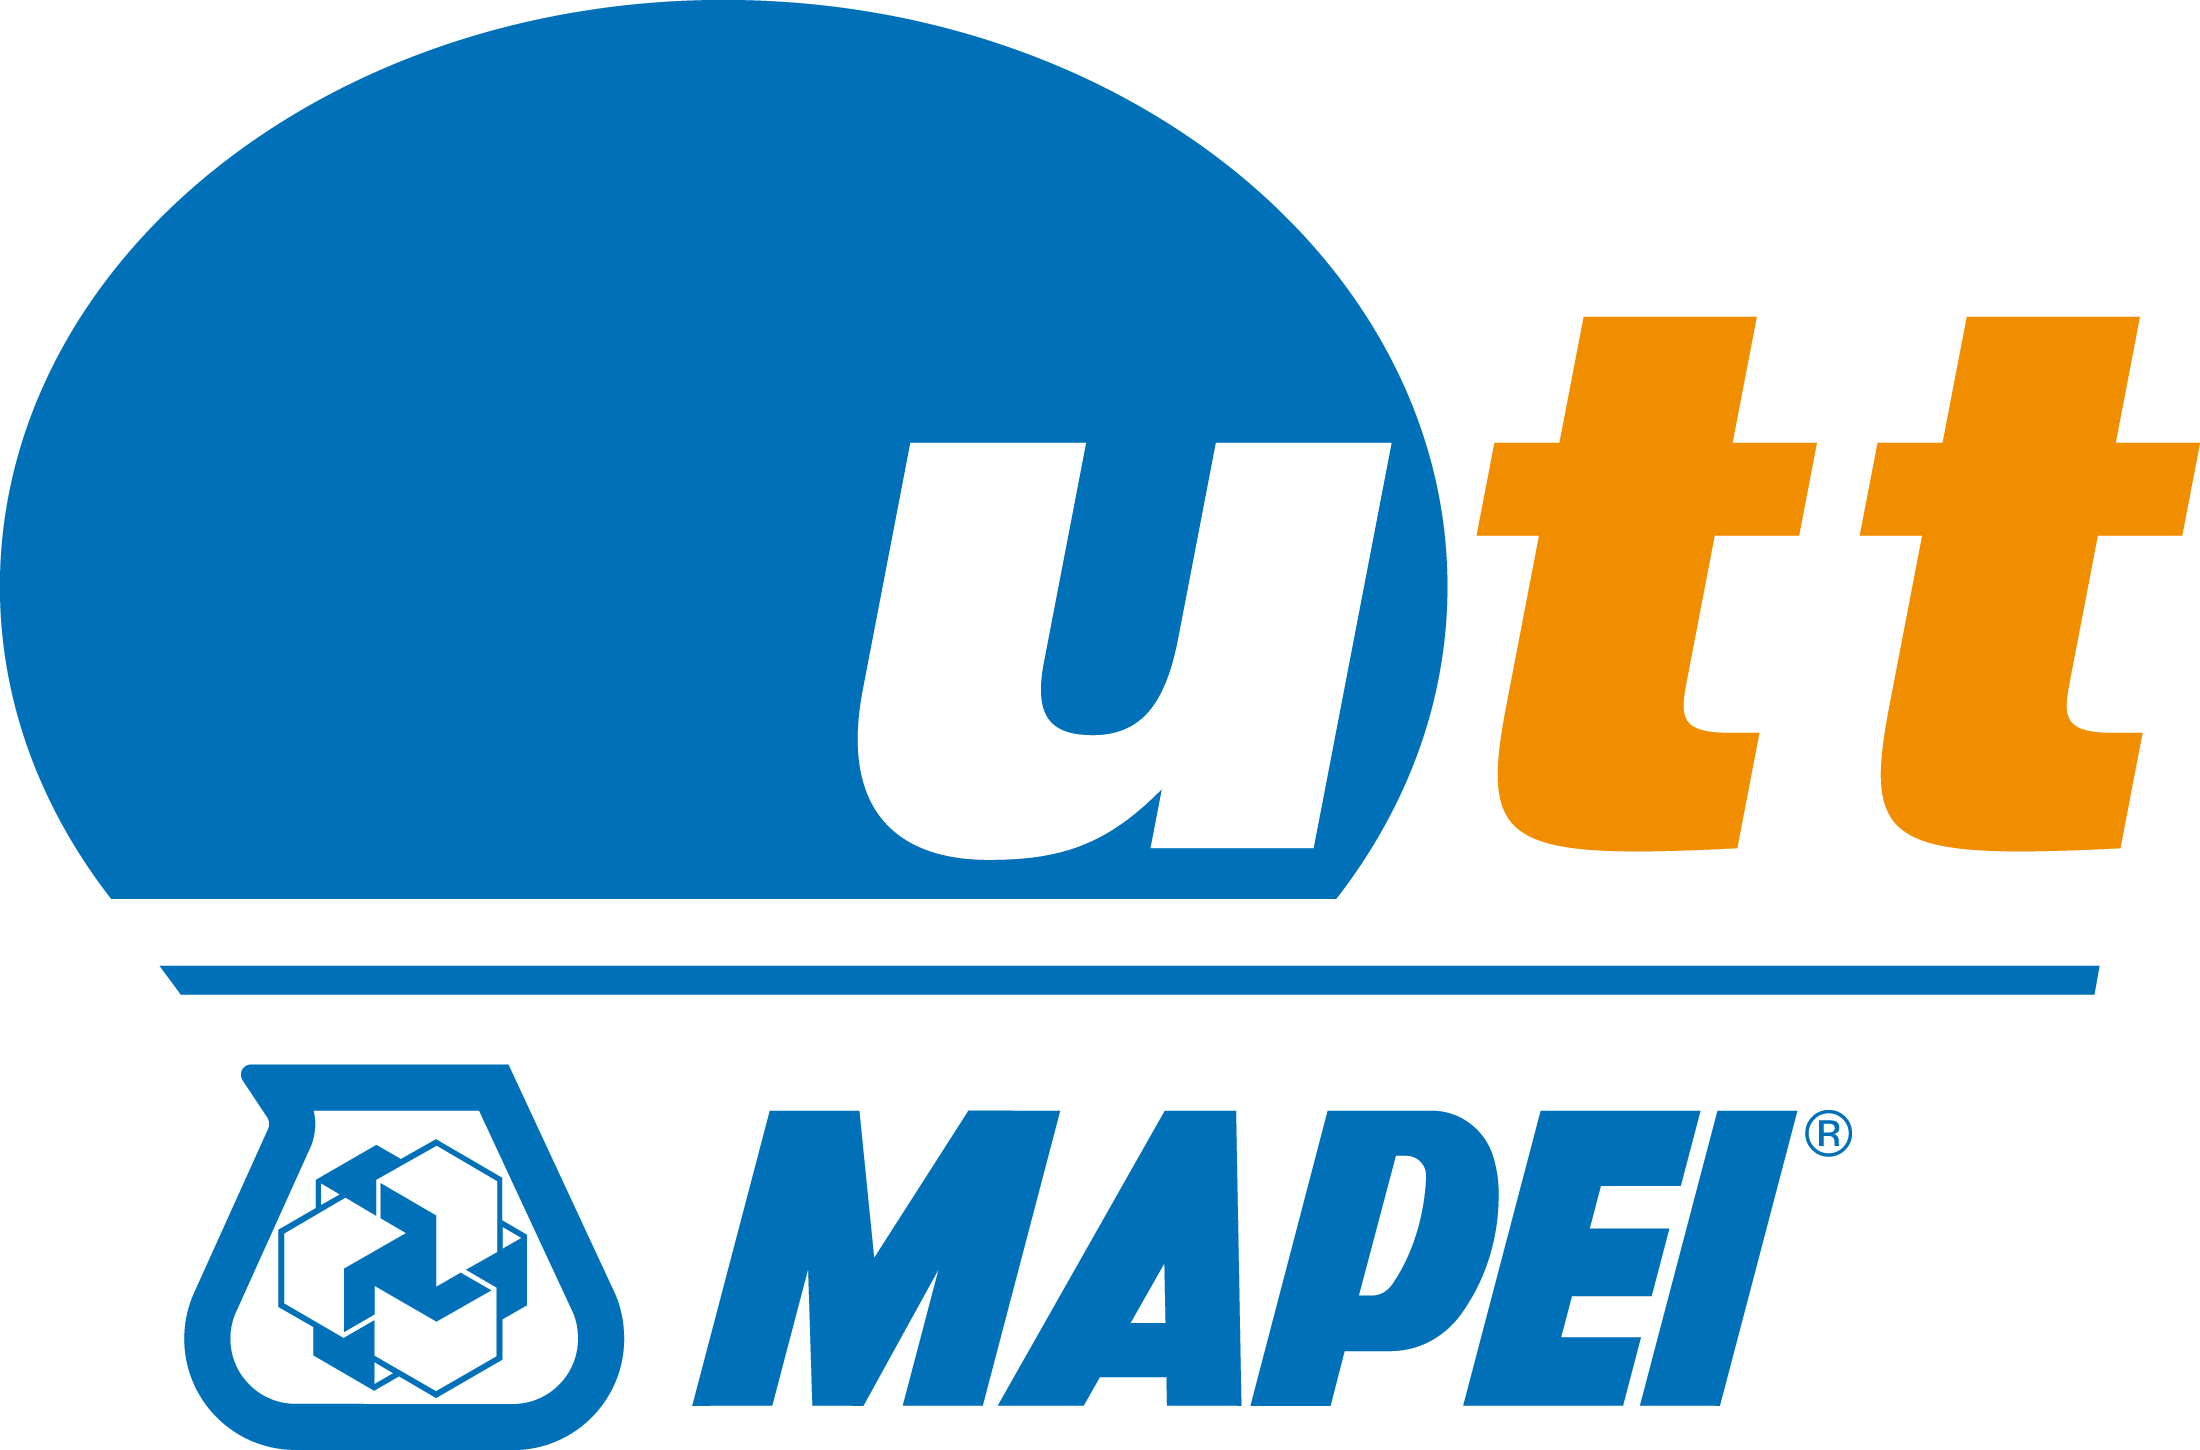 utt mapei logo blue orange positive